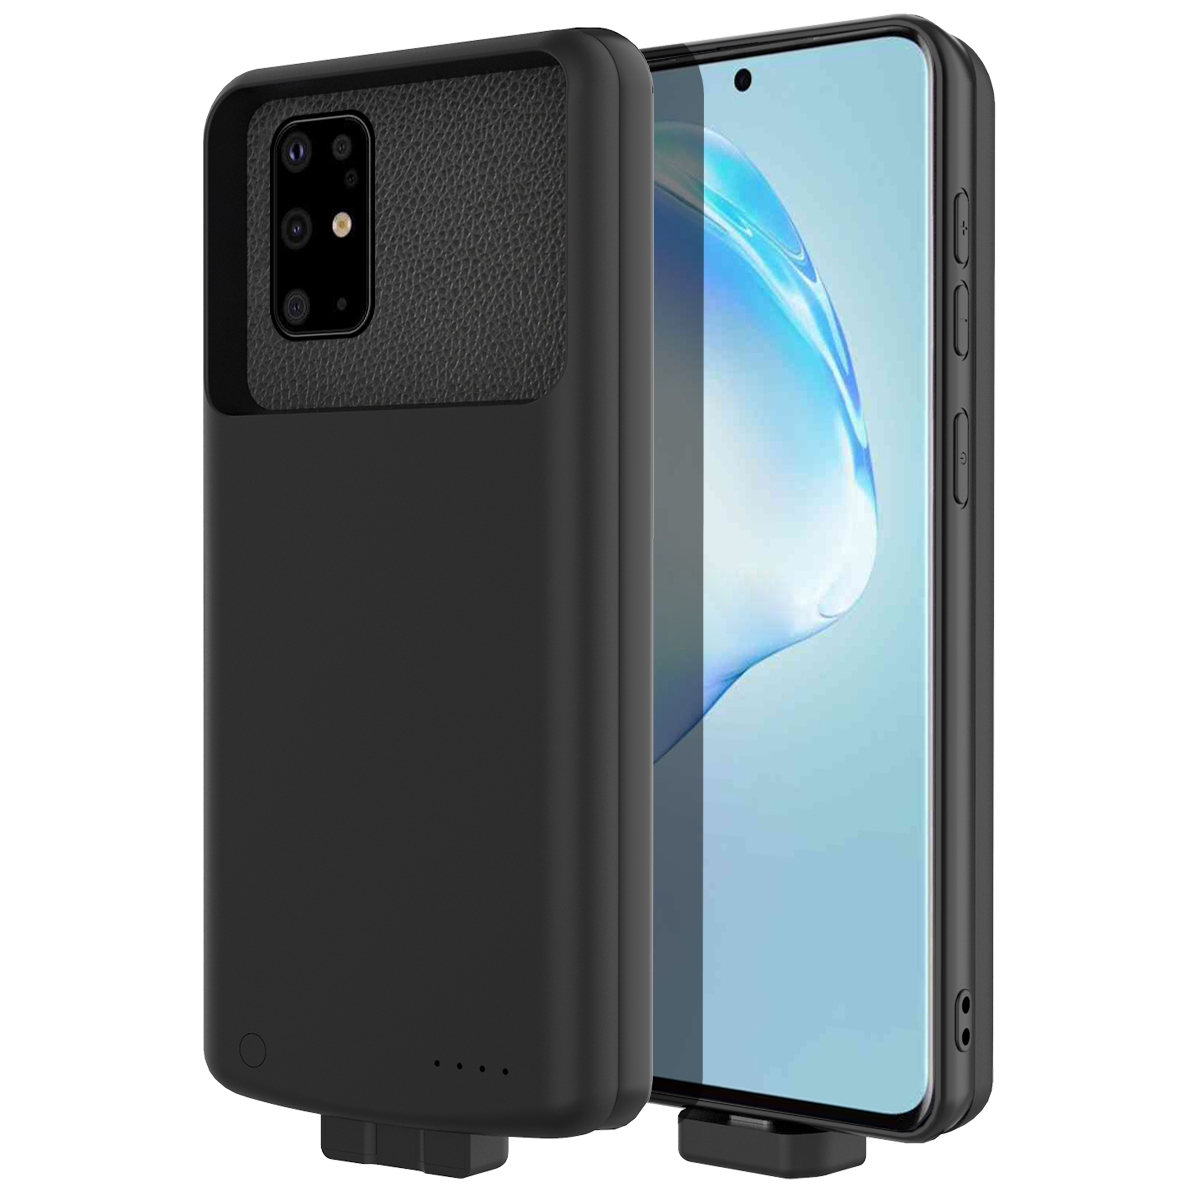 Battery Charger Case For Samsung Galaxy S20 Plus 7000mAh External Backup Power Bank Shockproof Charging Cover for S20 Plus Case|Battery Charger Cases| |  - title=